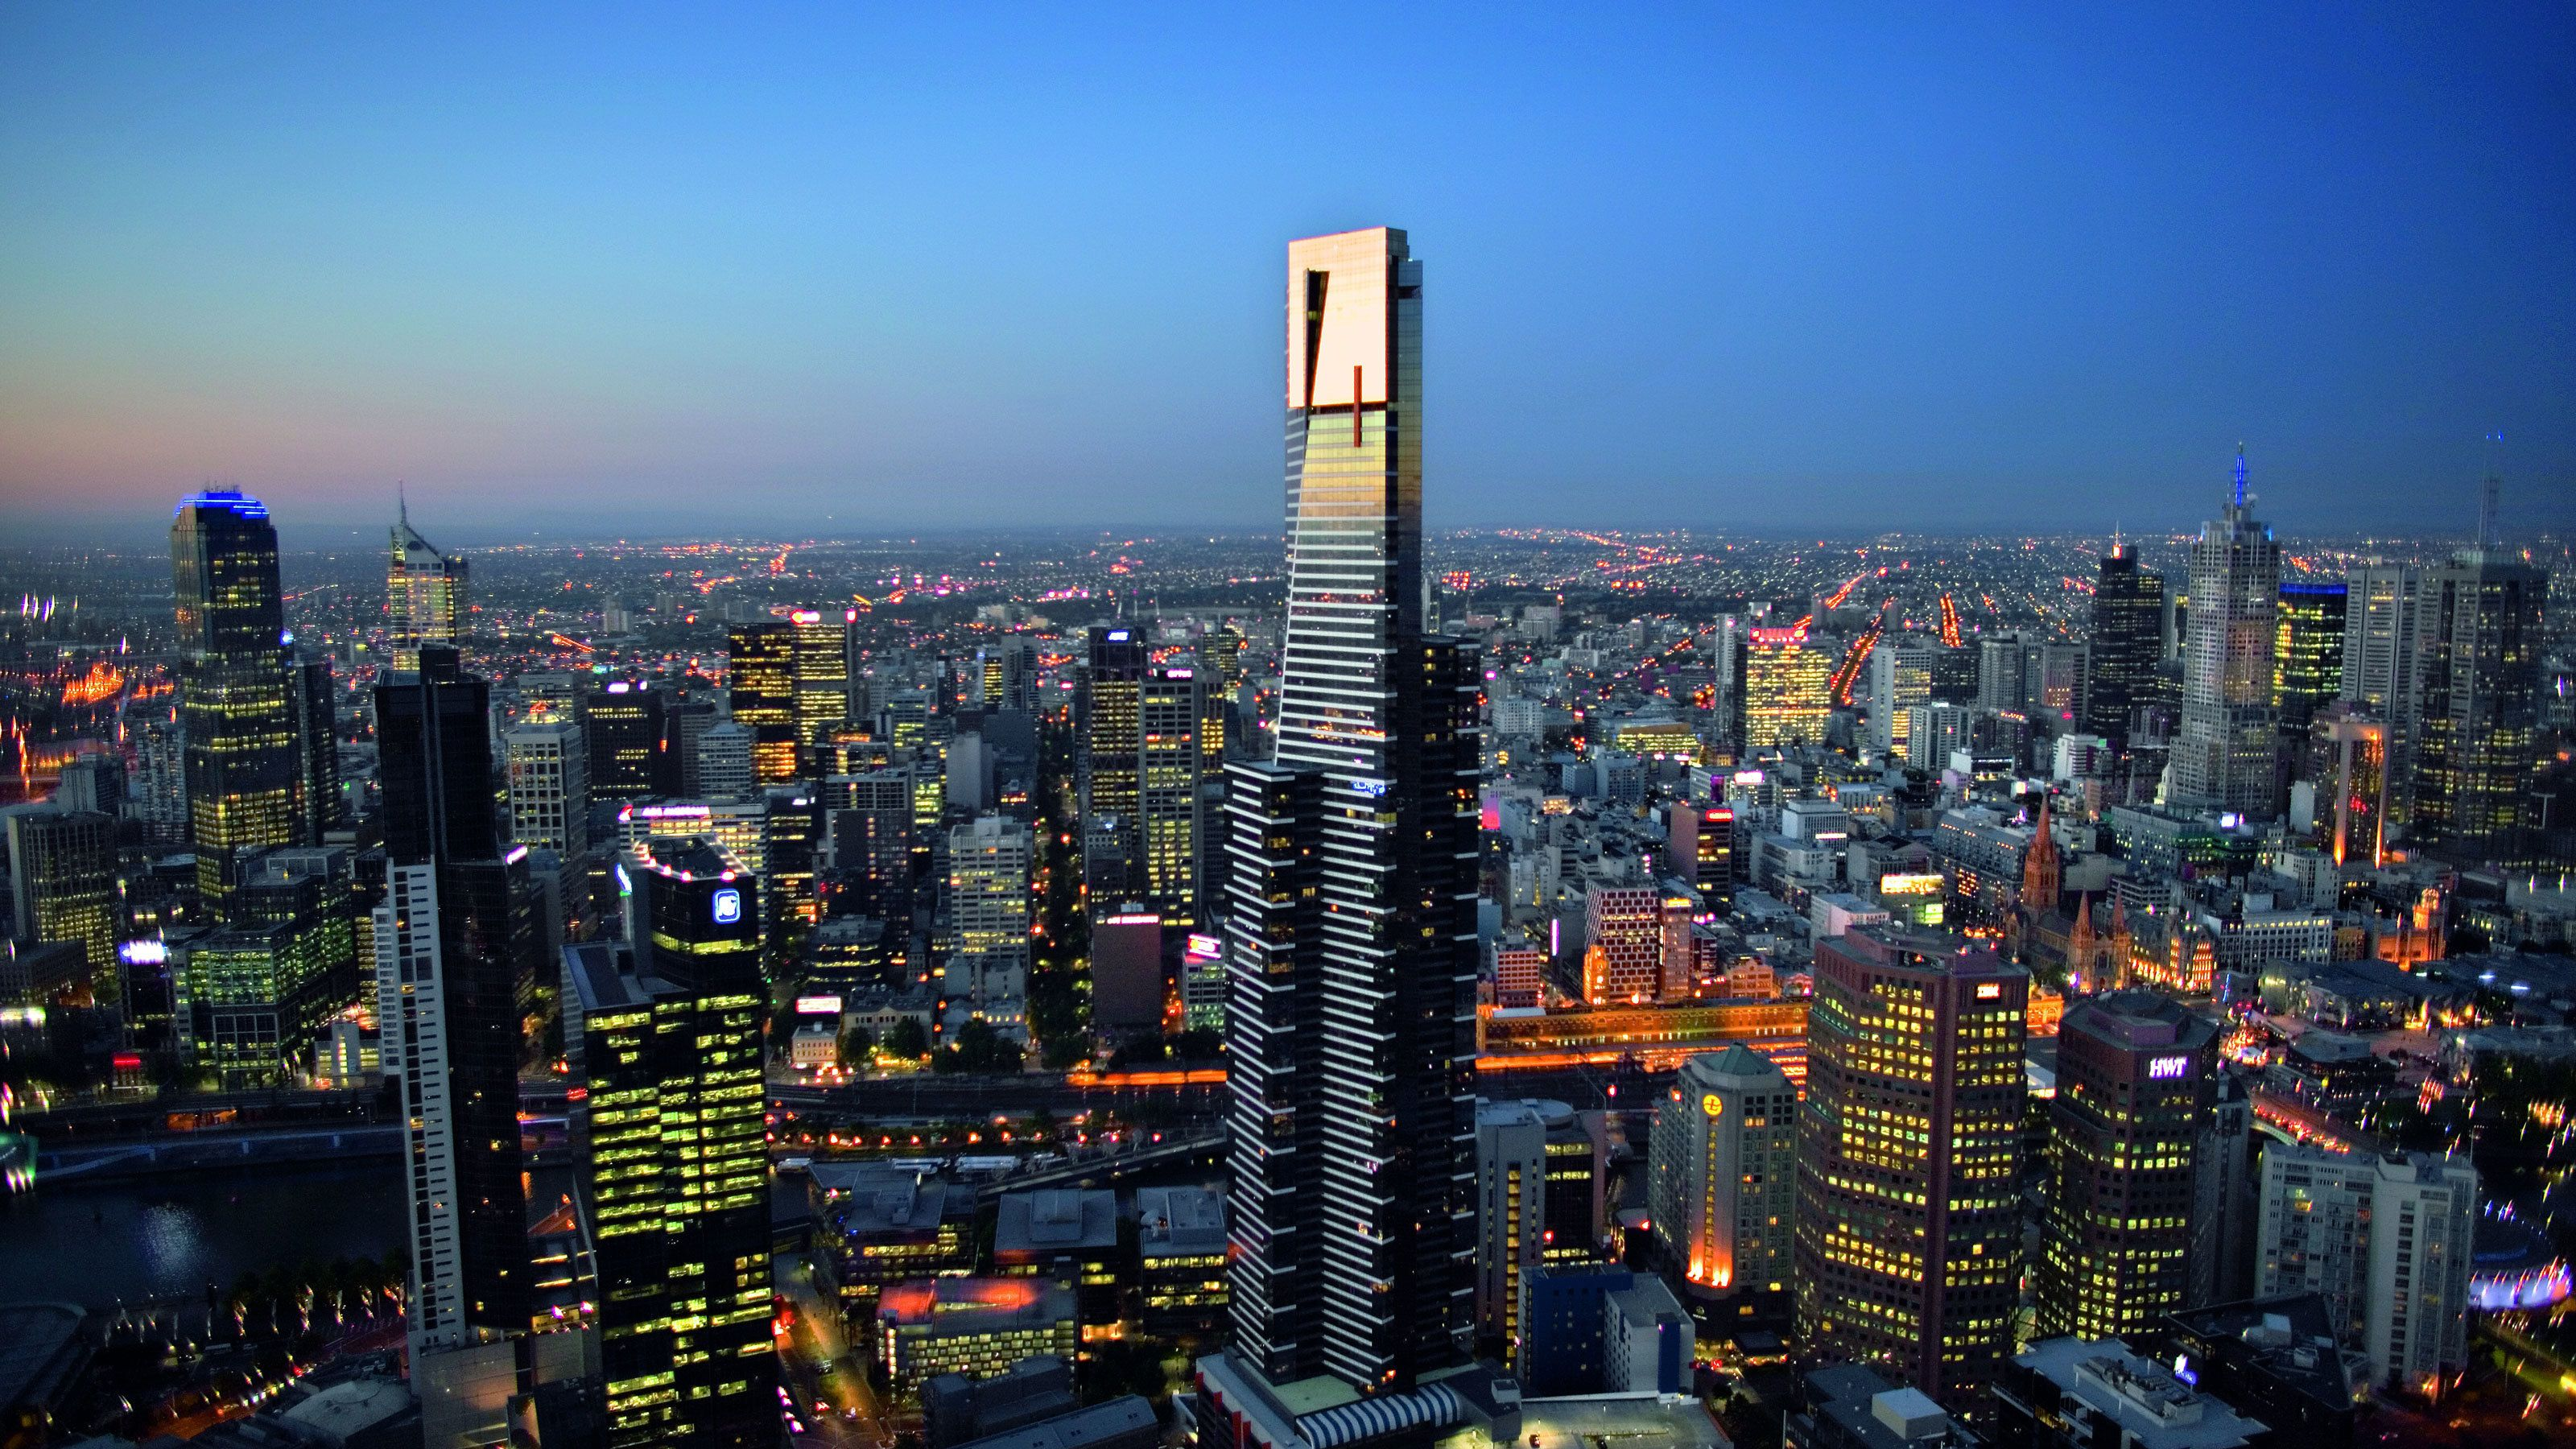 The Eureka Tower at night in Melbourne